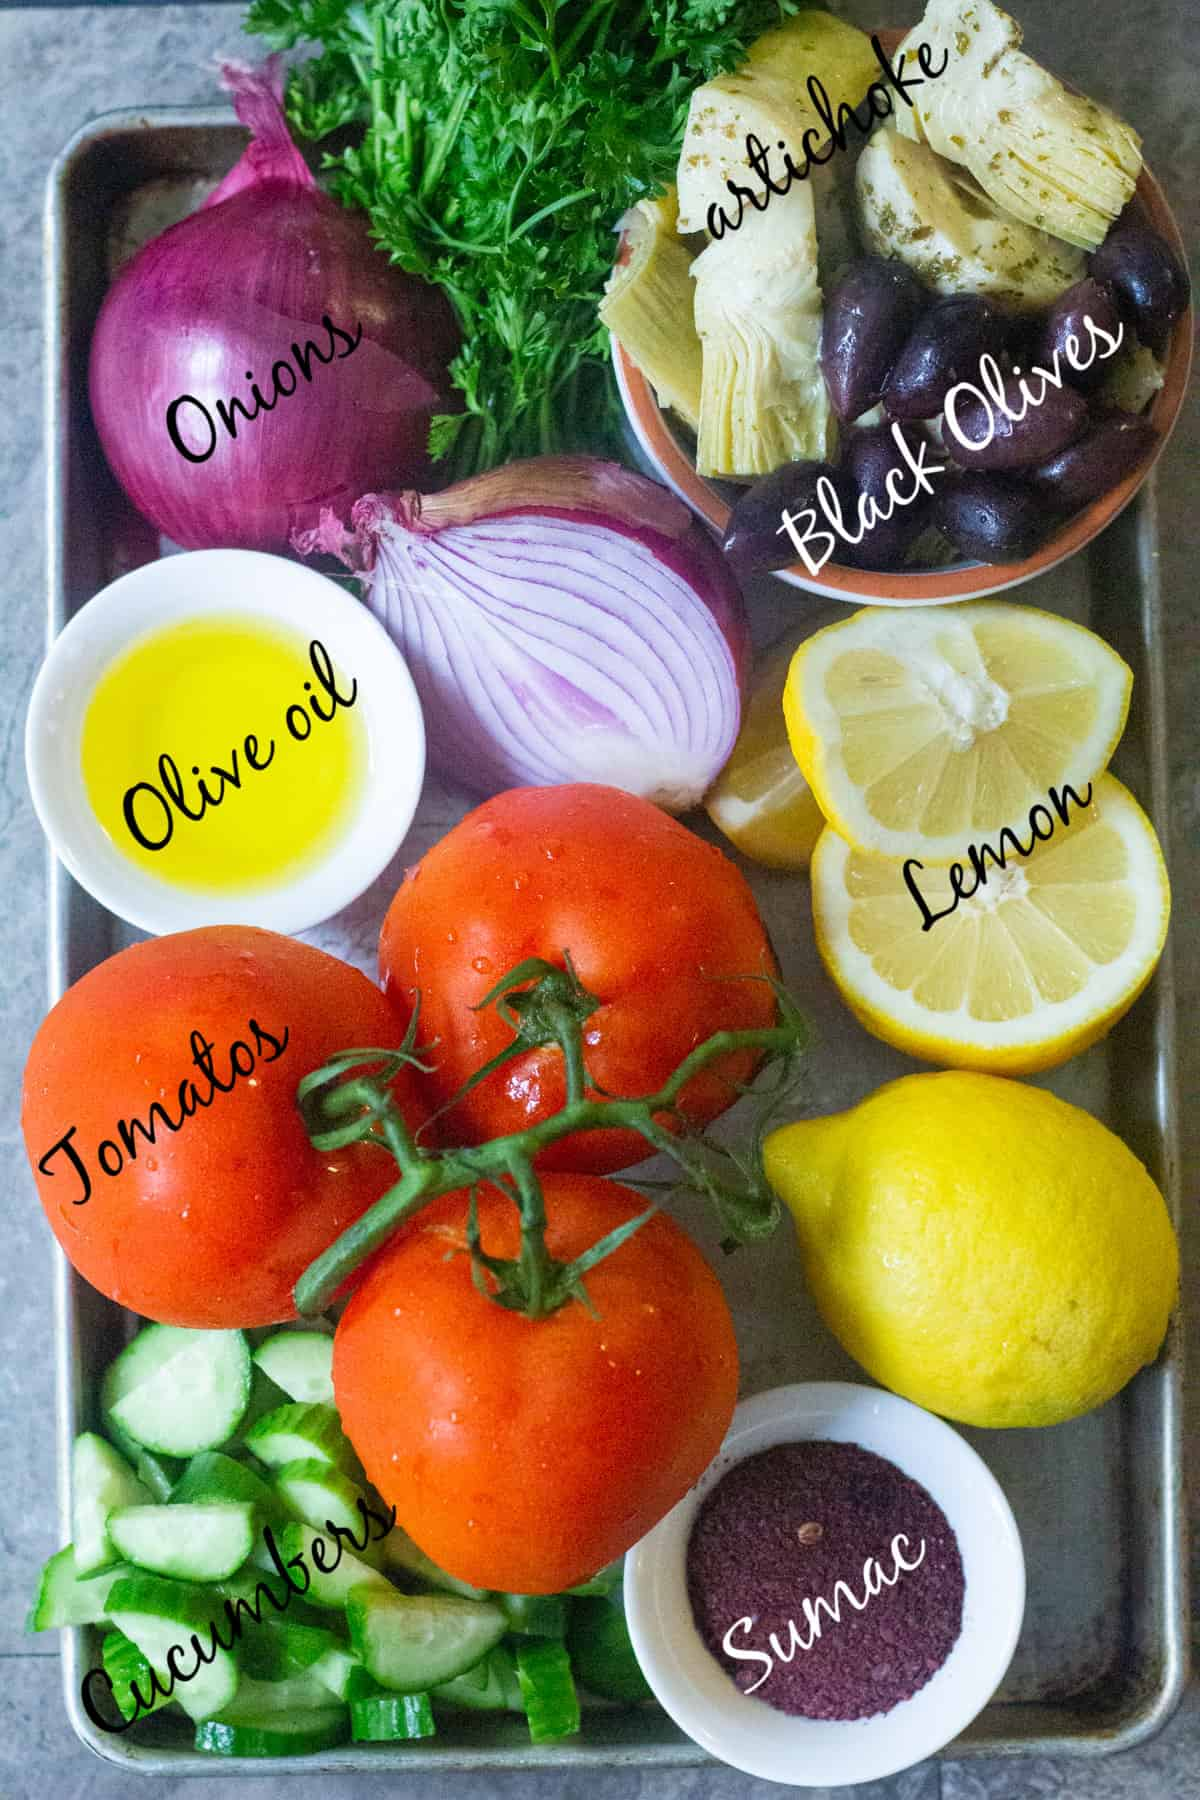 To make Mediterranean cucumber salad you need tomatoes, cucumber, red onion, artichokes, olives, olive oil, sumac and lemon.